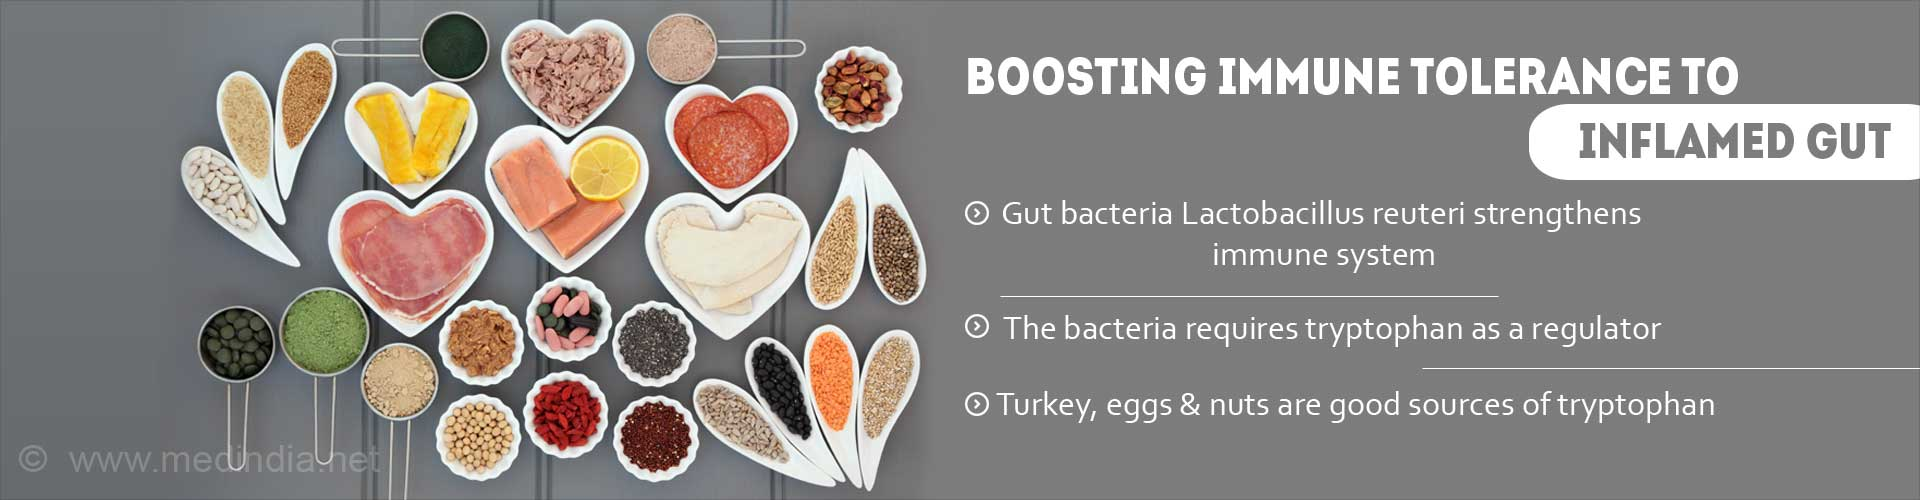 Protein In Turkey, Nuts Makes Immune Cells Tolerant To Inflamed Gut